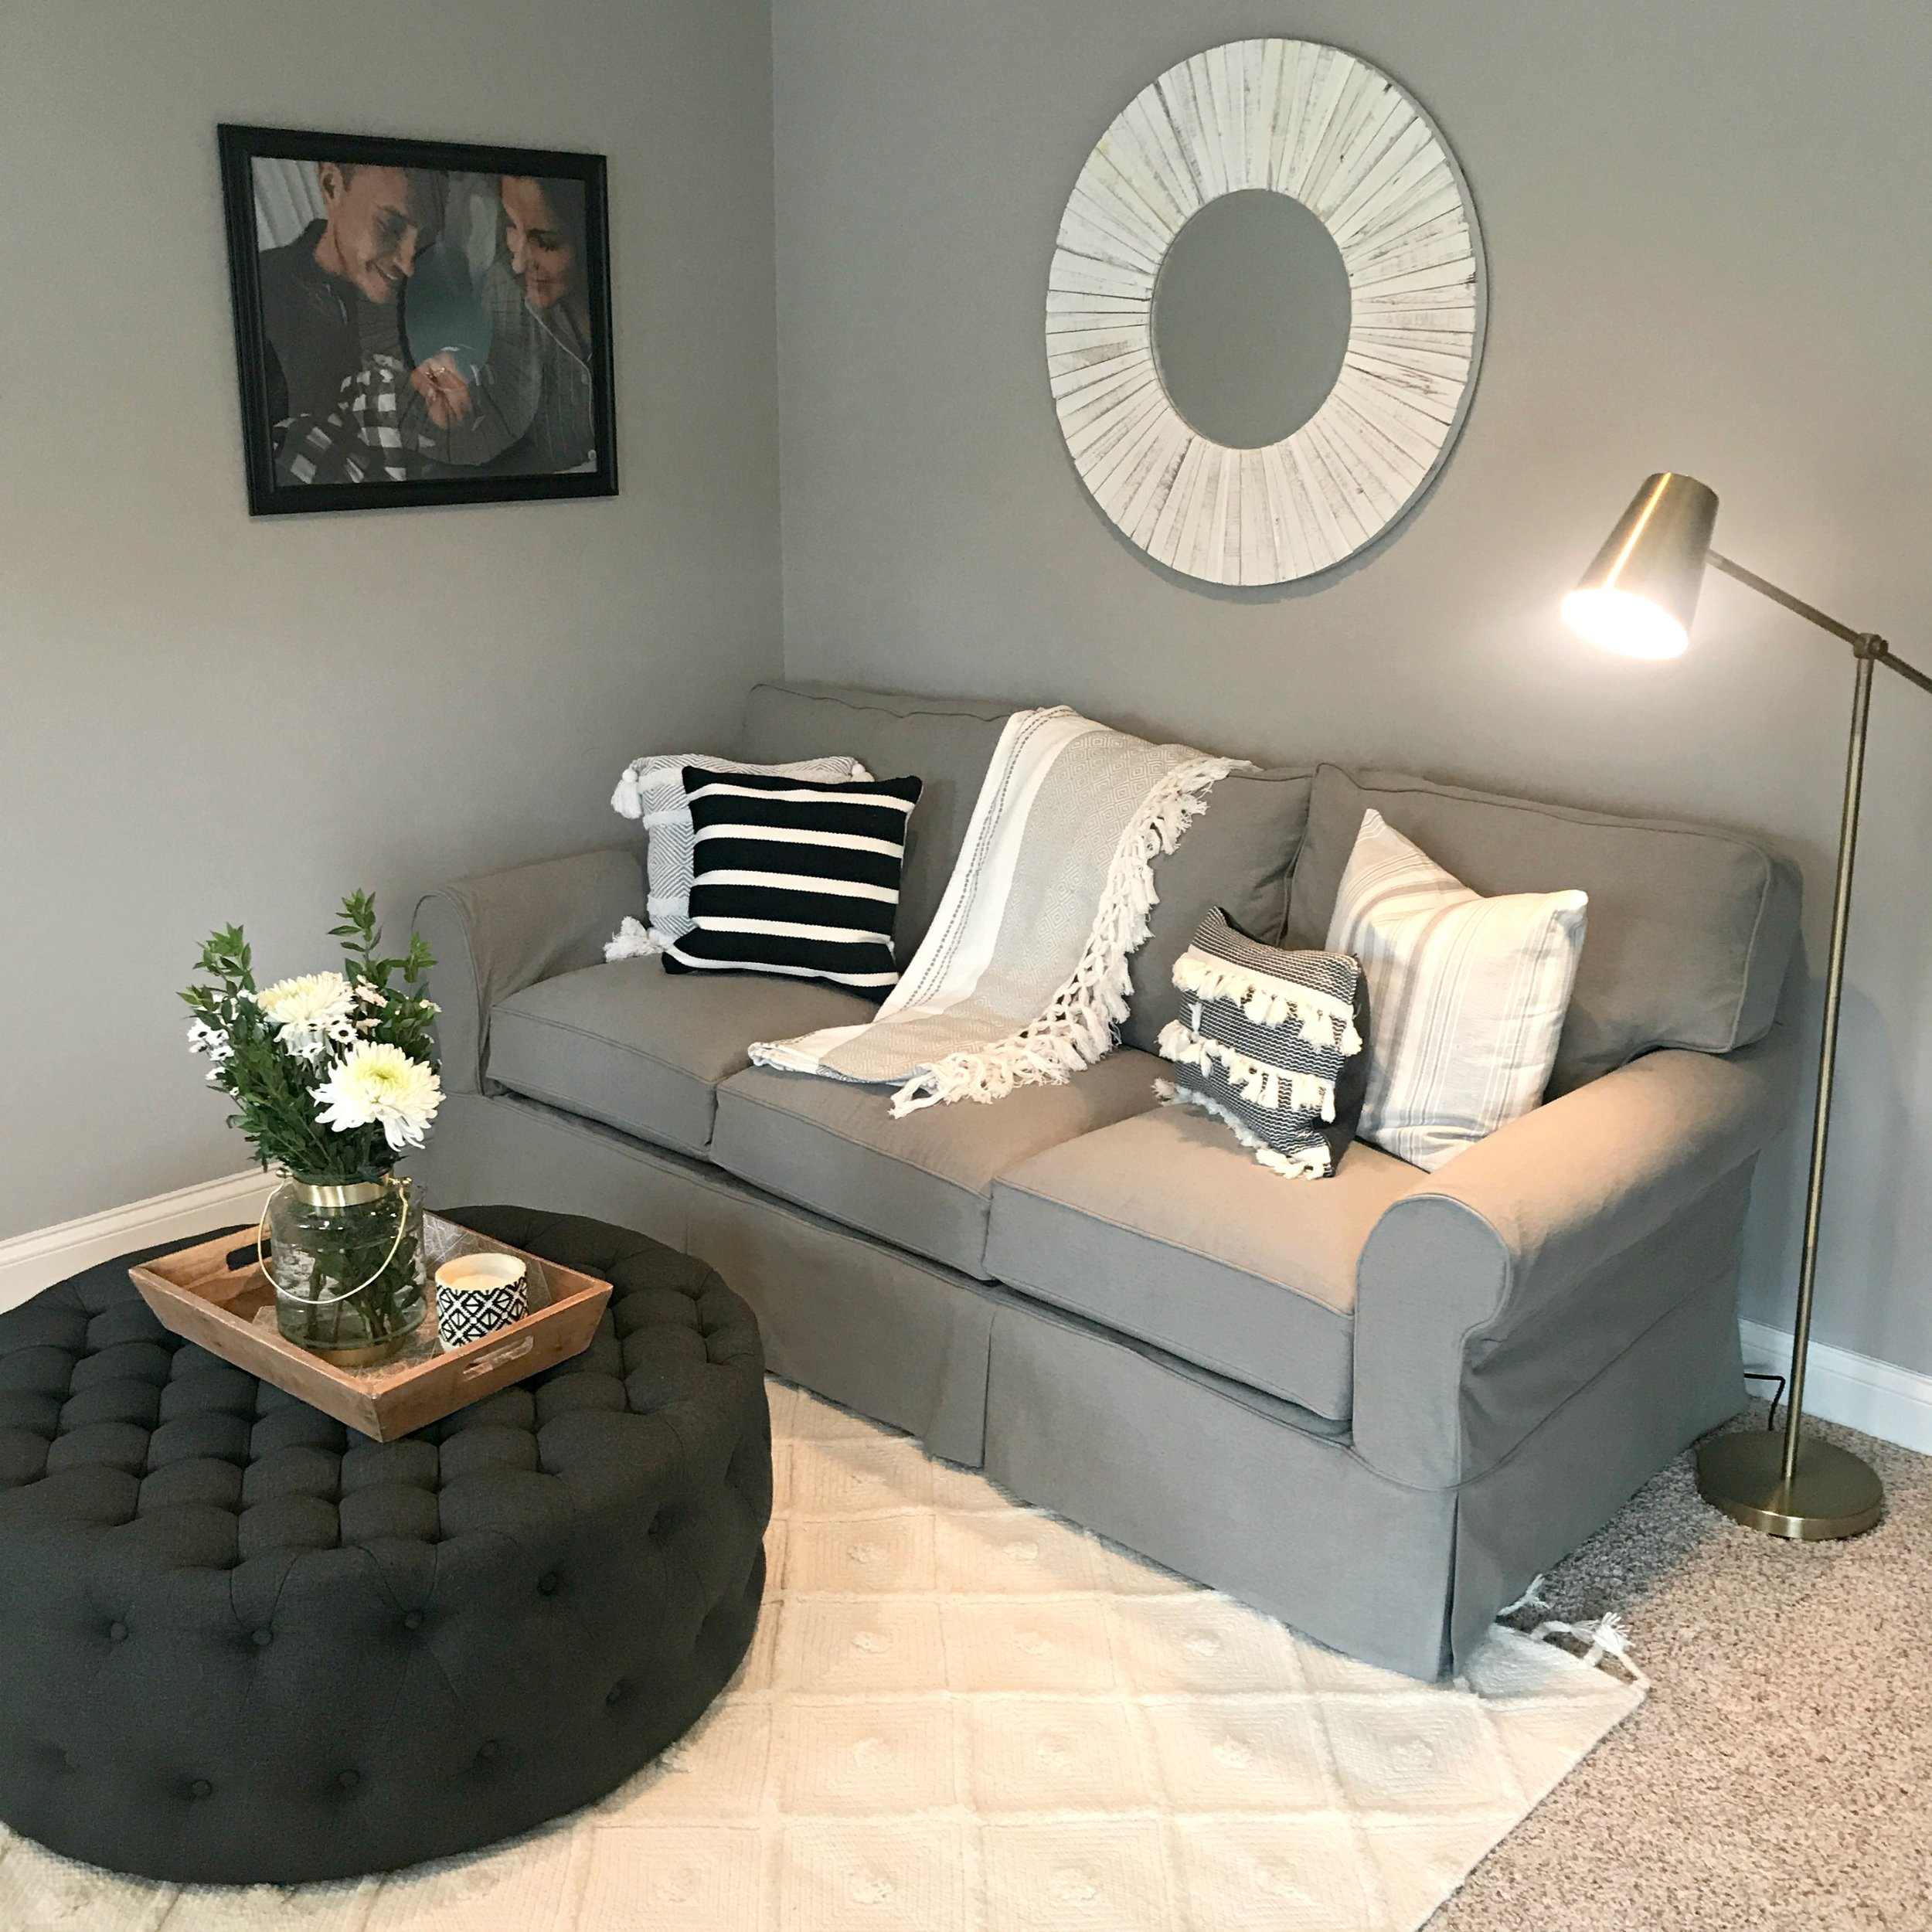 ottoman    |  rug    |  couch-  Arhaus   |  pillows-  At Home ,  Homegoods  +  Target   |  throw-  Homegoods  |   lamp   | accessories-  Homegoods    |   mirror